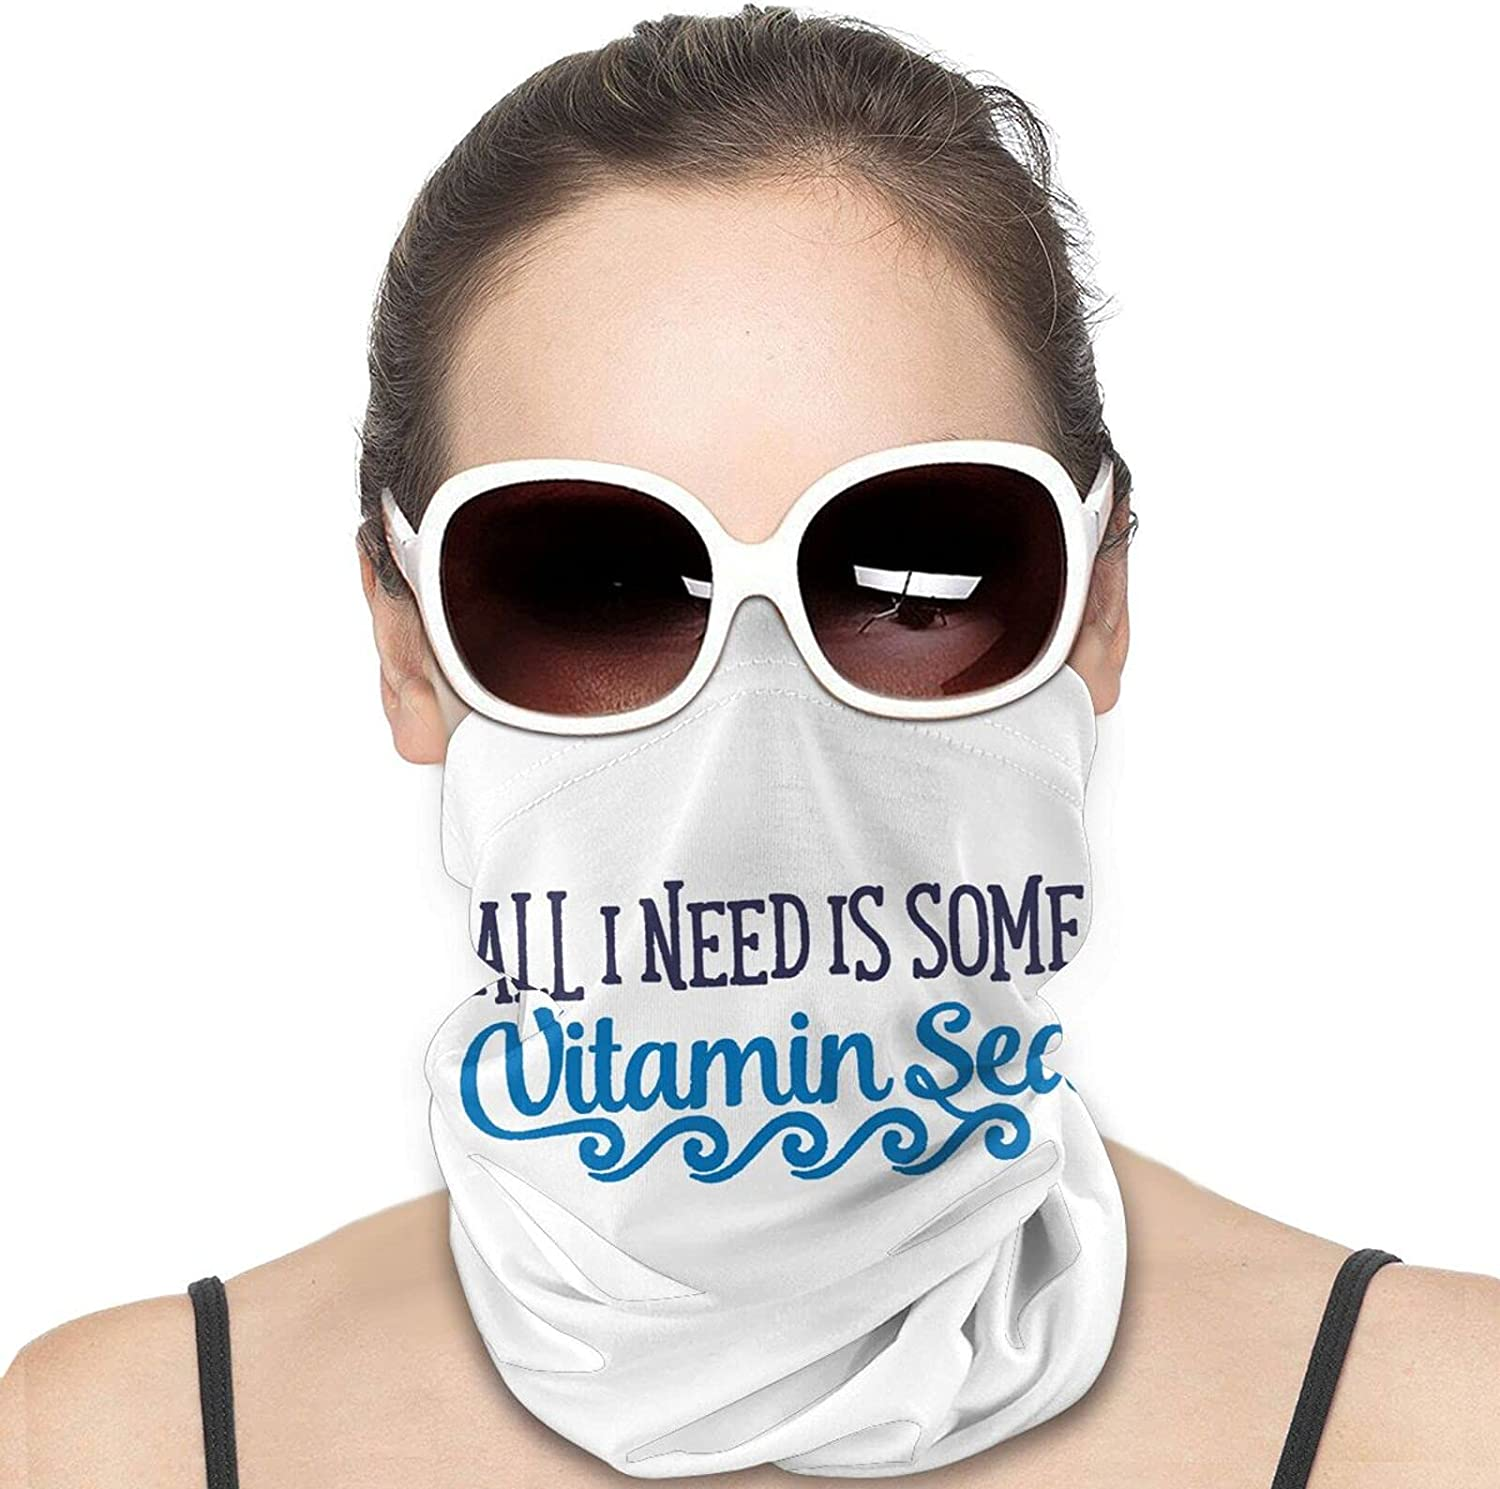 All I Need Is Some Vitamin Sea Round Neck Gaiter Bandnas Face Cover Uv Protection Prevent bask in Ice Scarf Headbands Perfect for Motorcycle Cycling Running Festival Raves Outdoors